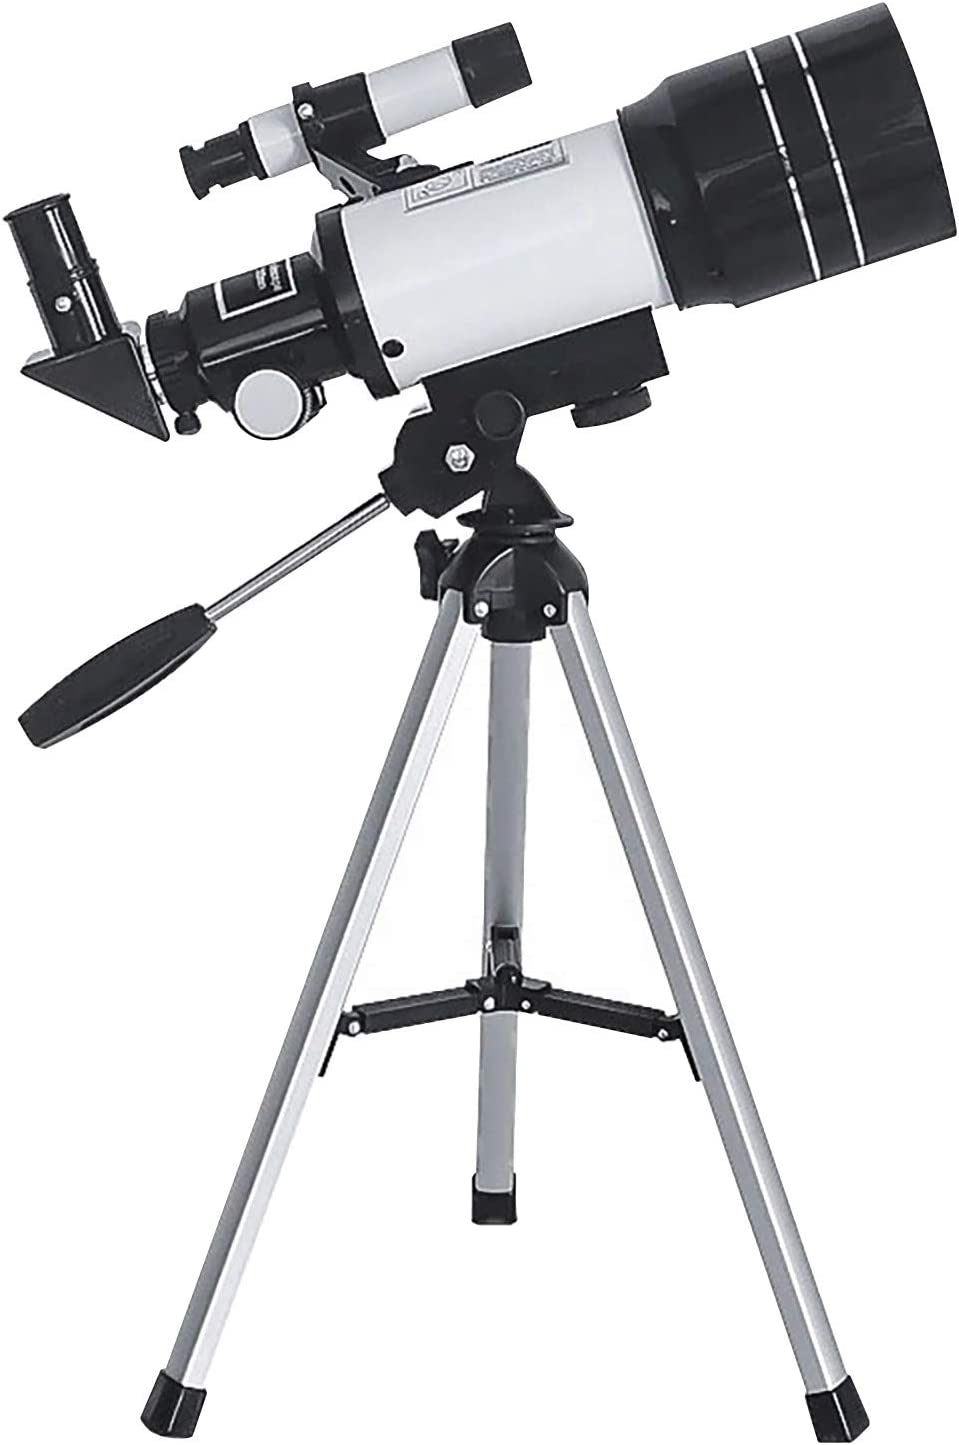 Telescopes for Adults Astronomy Professional, 70mm Aperture Telescope with Tripod, Astronomical Refracting Telescope Gifts for Astronomy Beginners, Travel Telescope with 2 Magnification Eyepieces